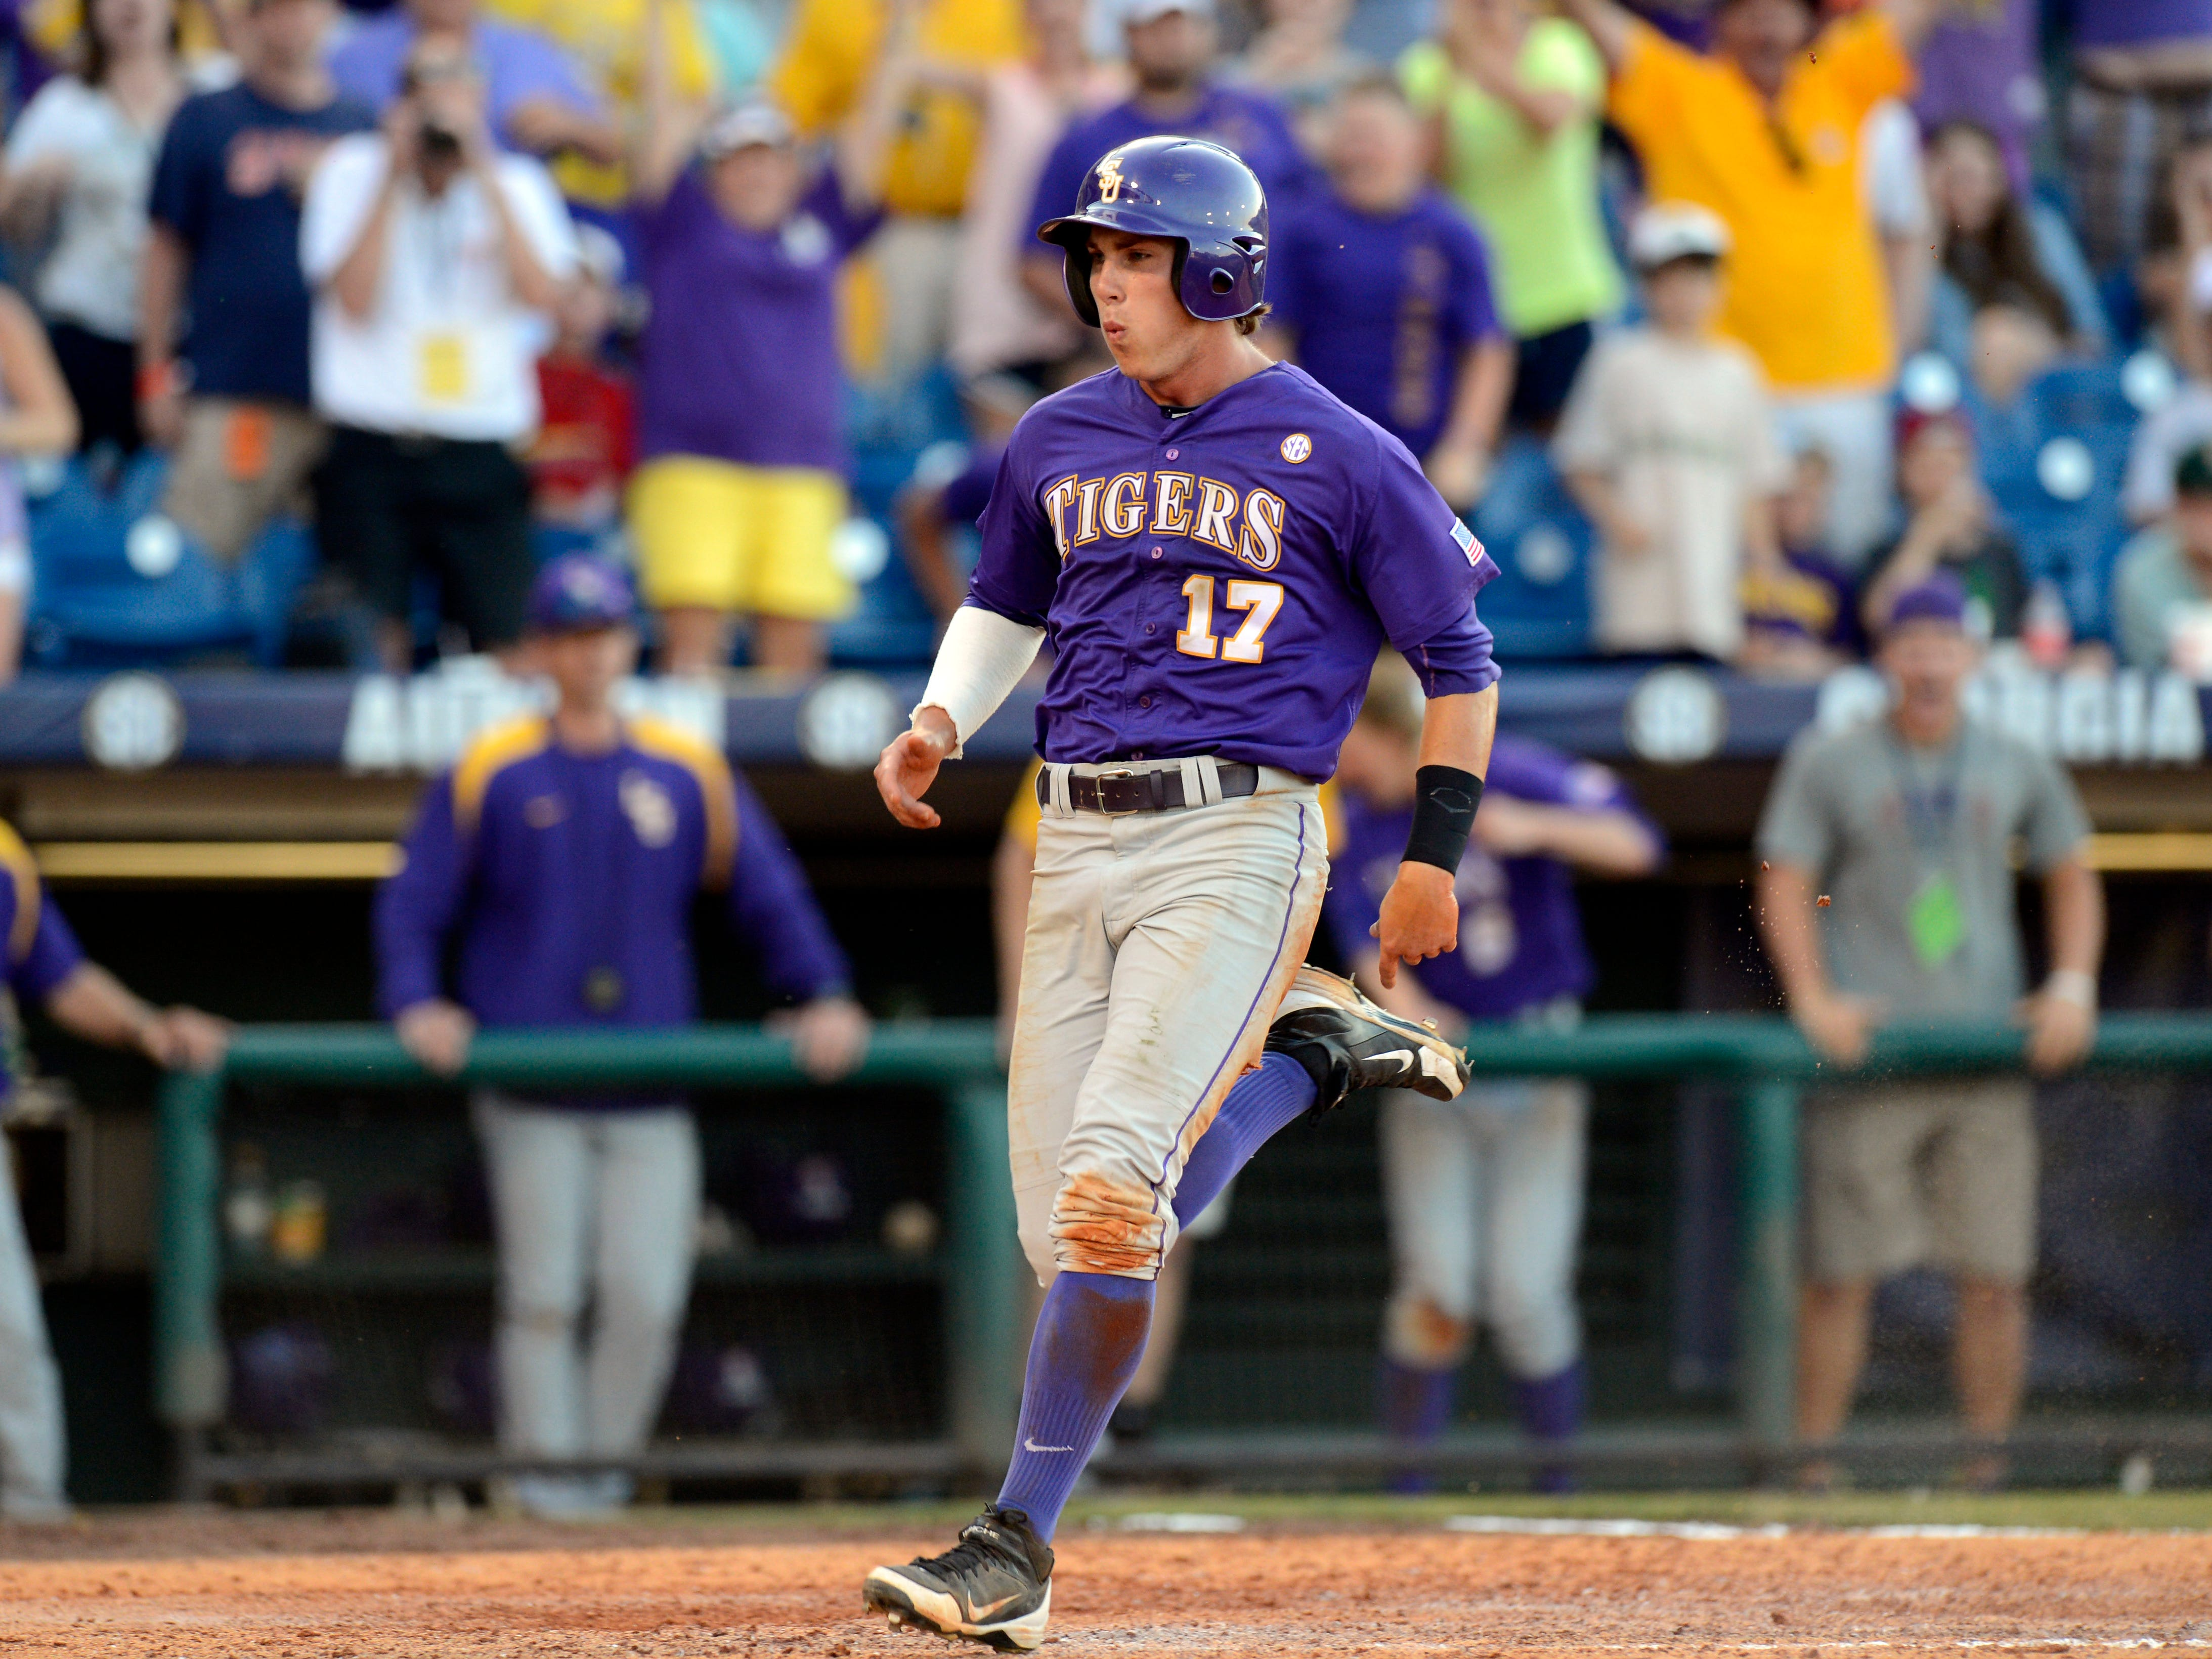 LSU Tigers baserunner Jared Foster (17) has been reinstated to the team.